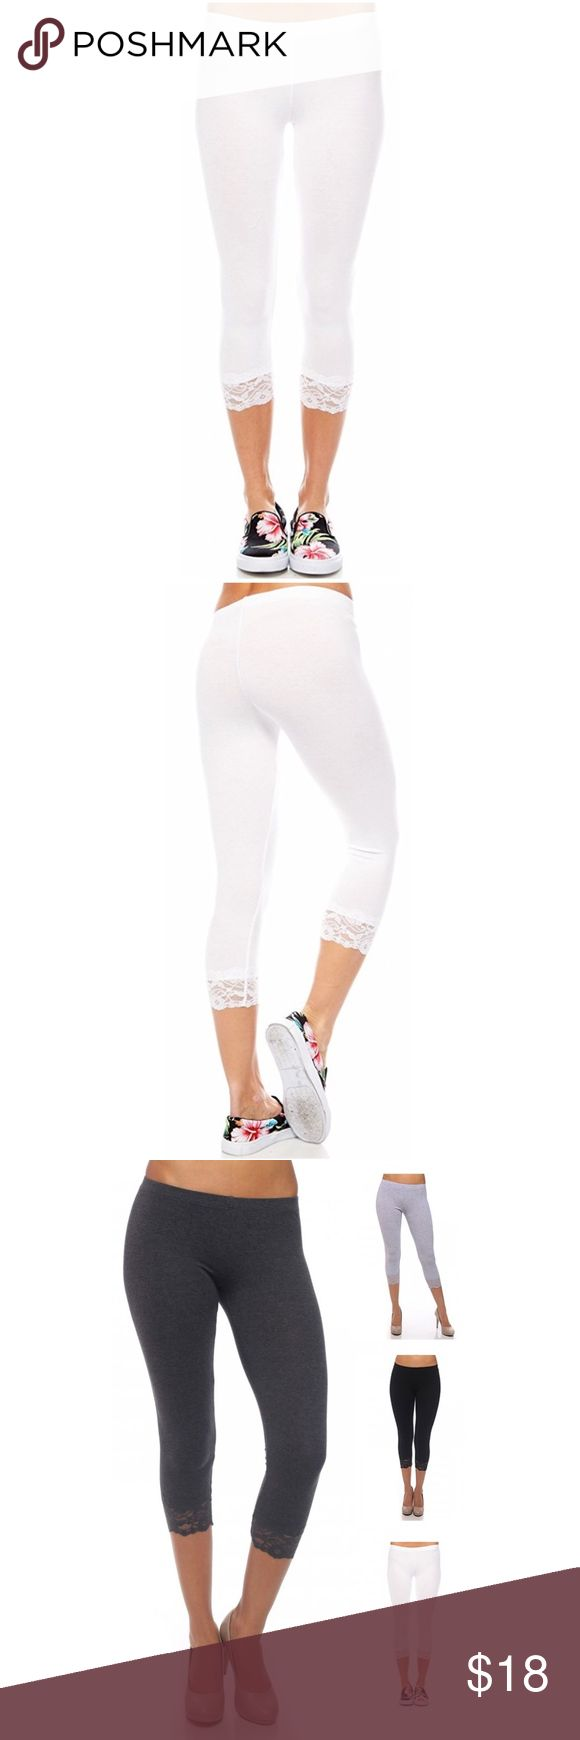 Basic White Lace Trim Capri Leggings Basic White Lace Trim Capri Leggings. Material- 95% Cotton, 5% Spandex. Other colors and styles available, bundle to save. Pants Leggings